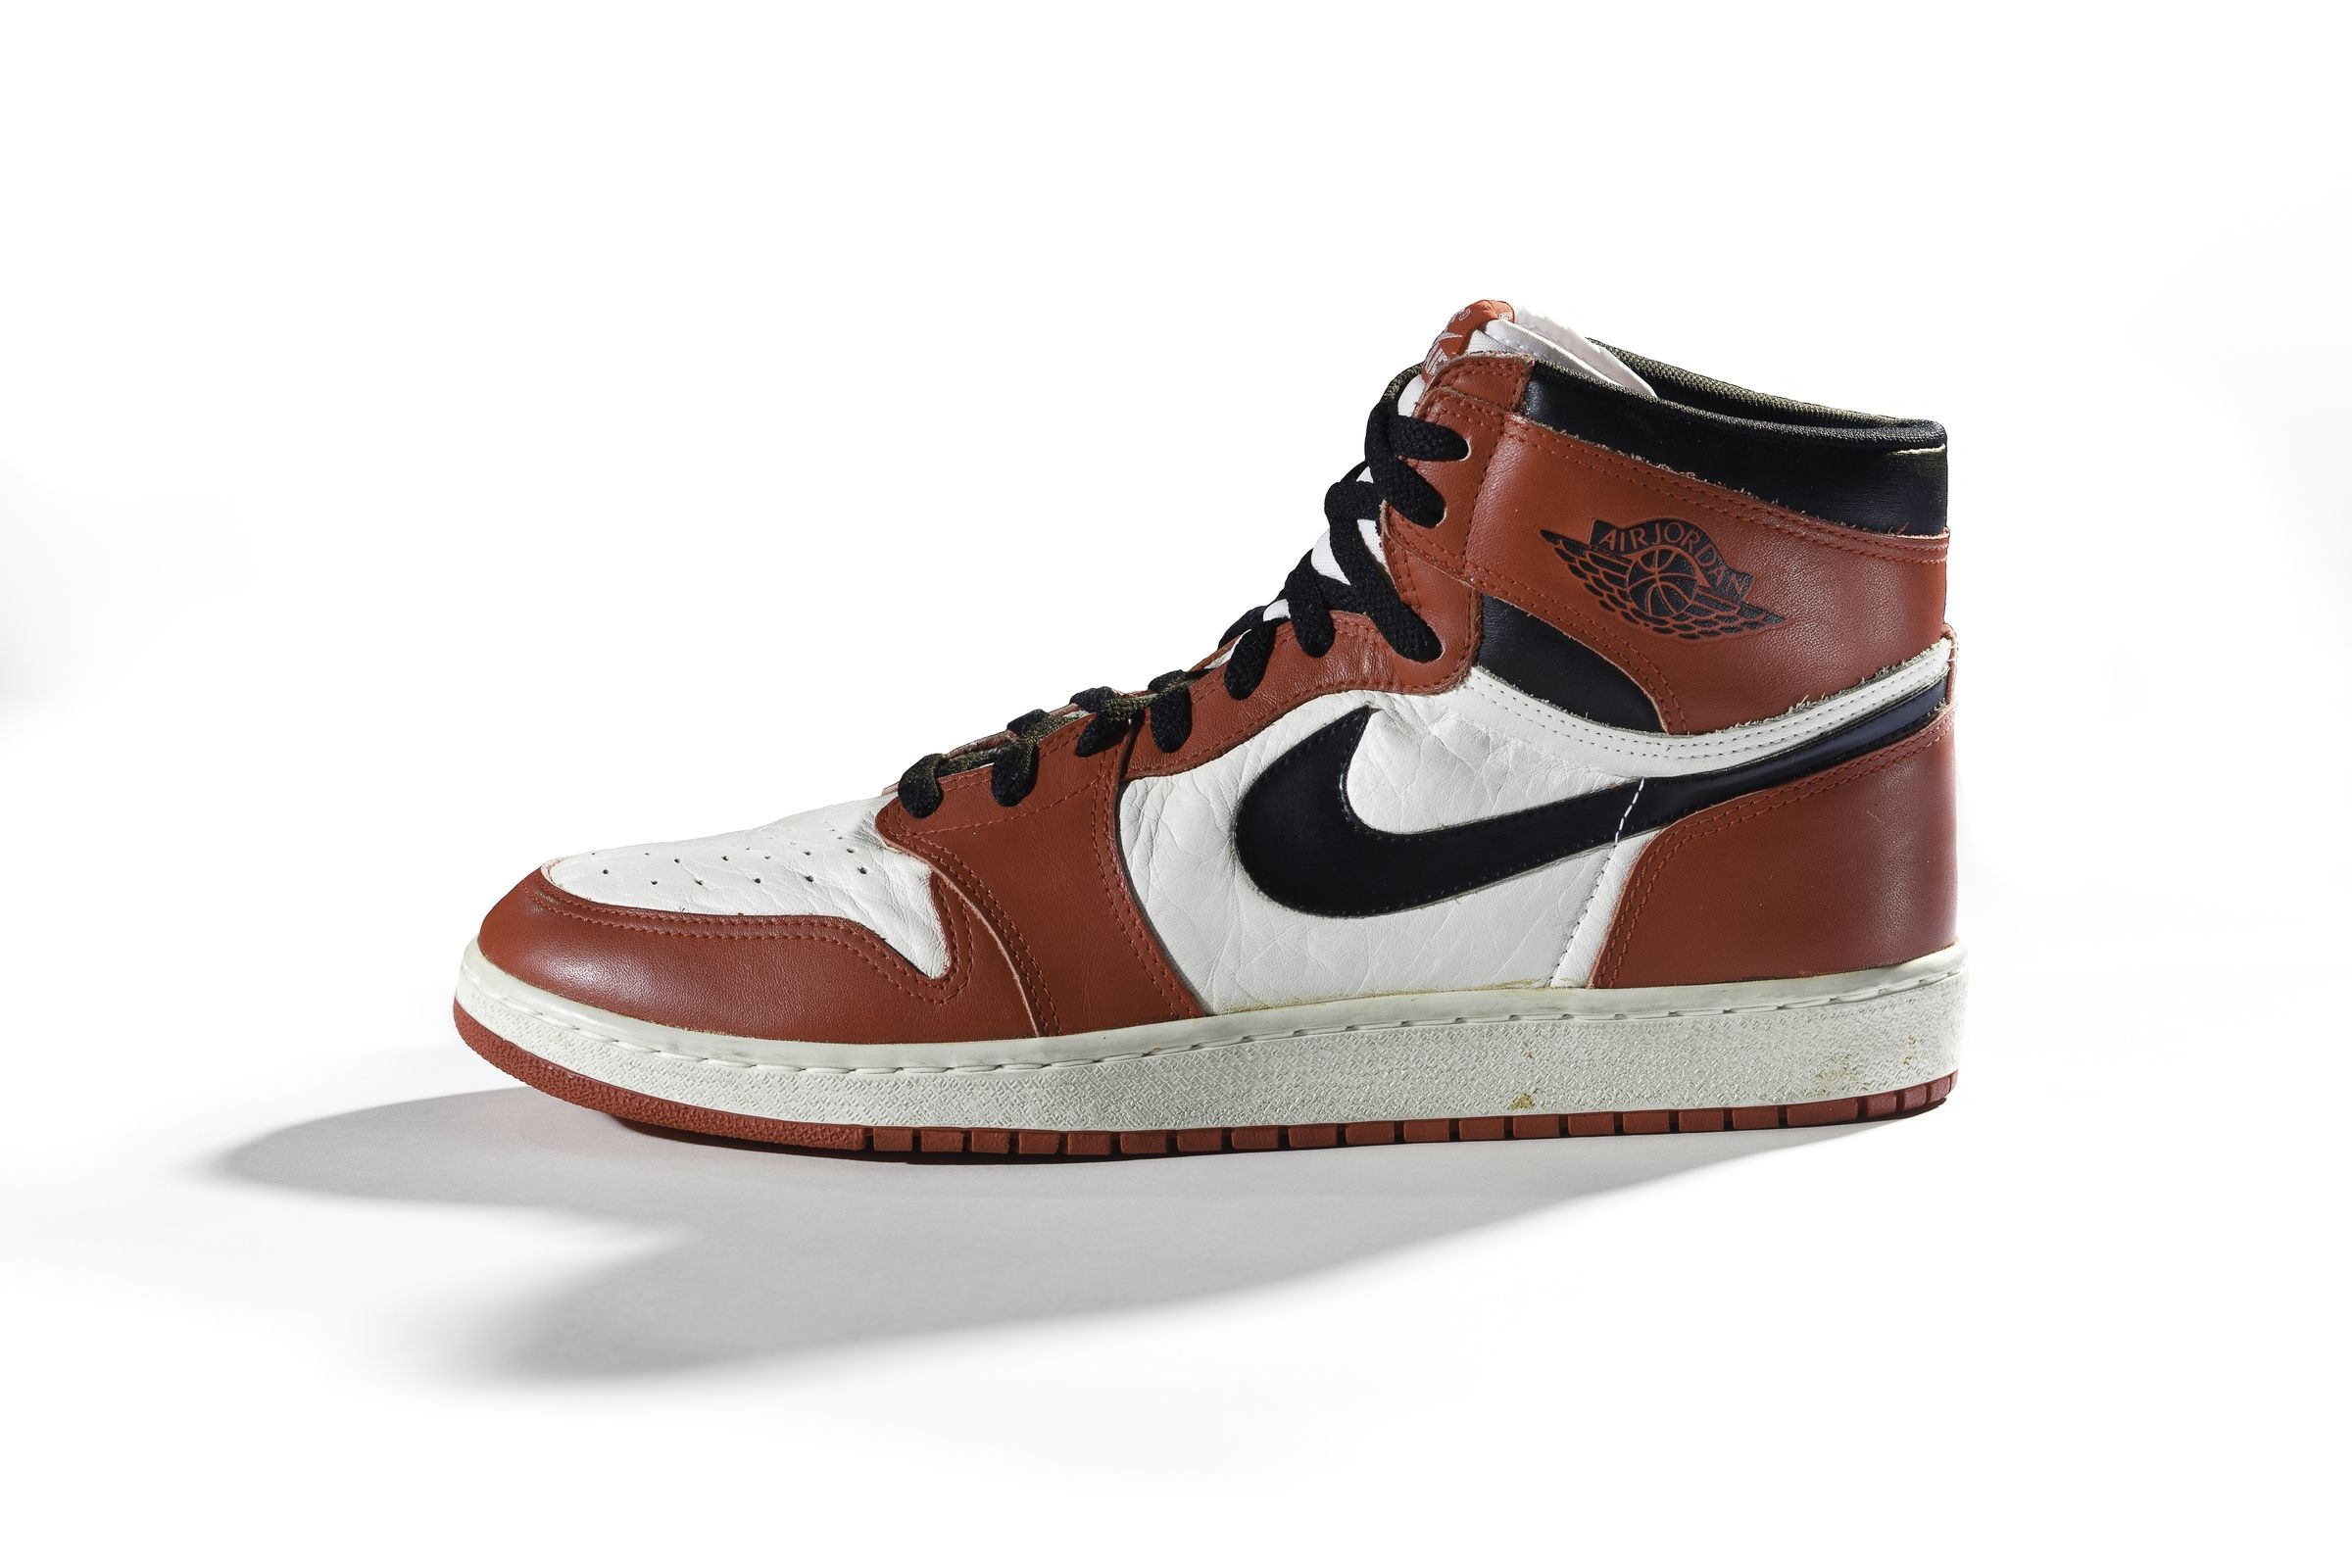 brand new 8e12a fce36 ... 1 A Nike Air Jordan I sneaker from 1985 (Nike Archives).